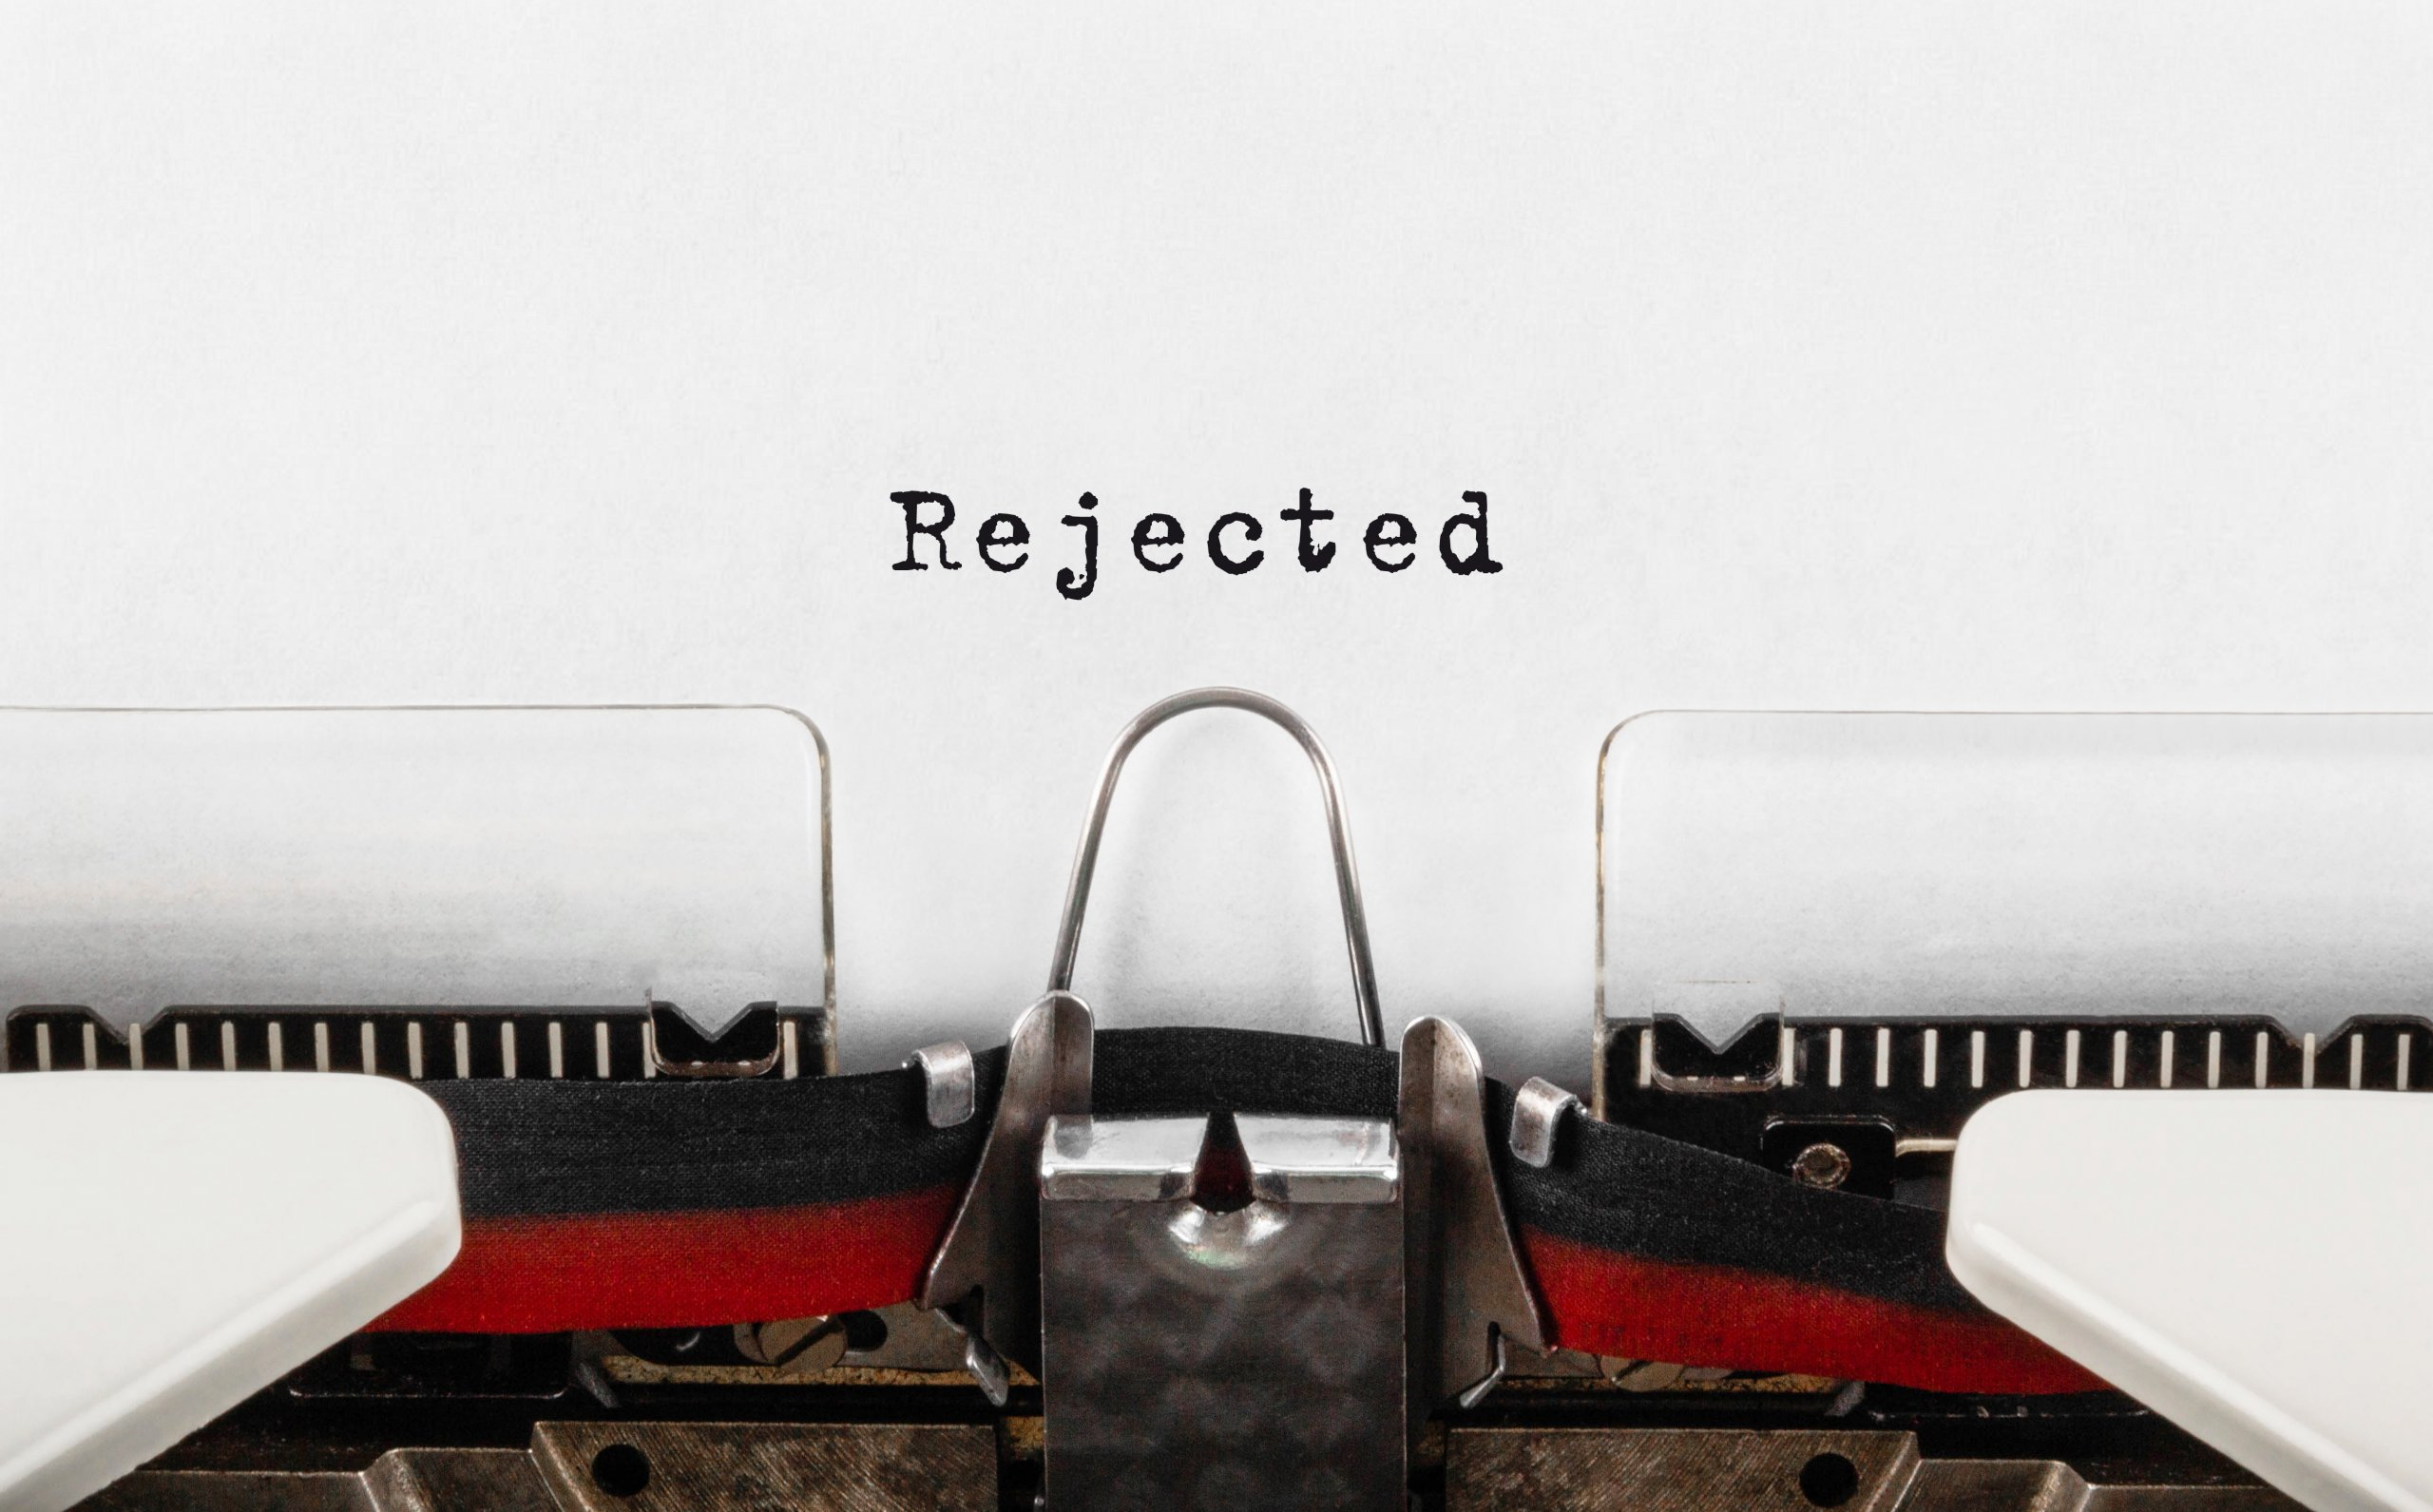 Don't get rejected because including details which are not required on a CV.